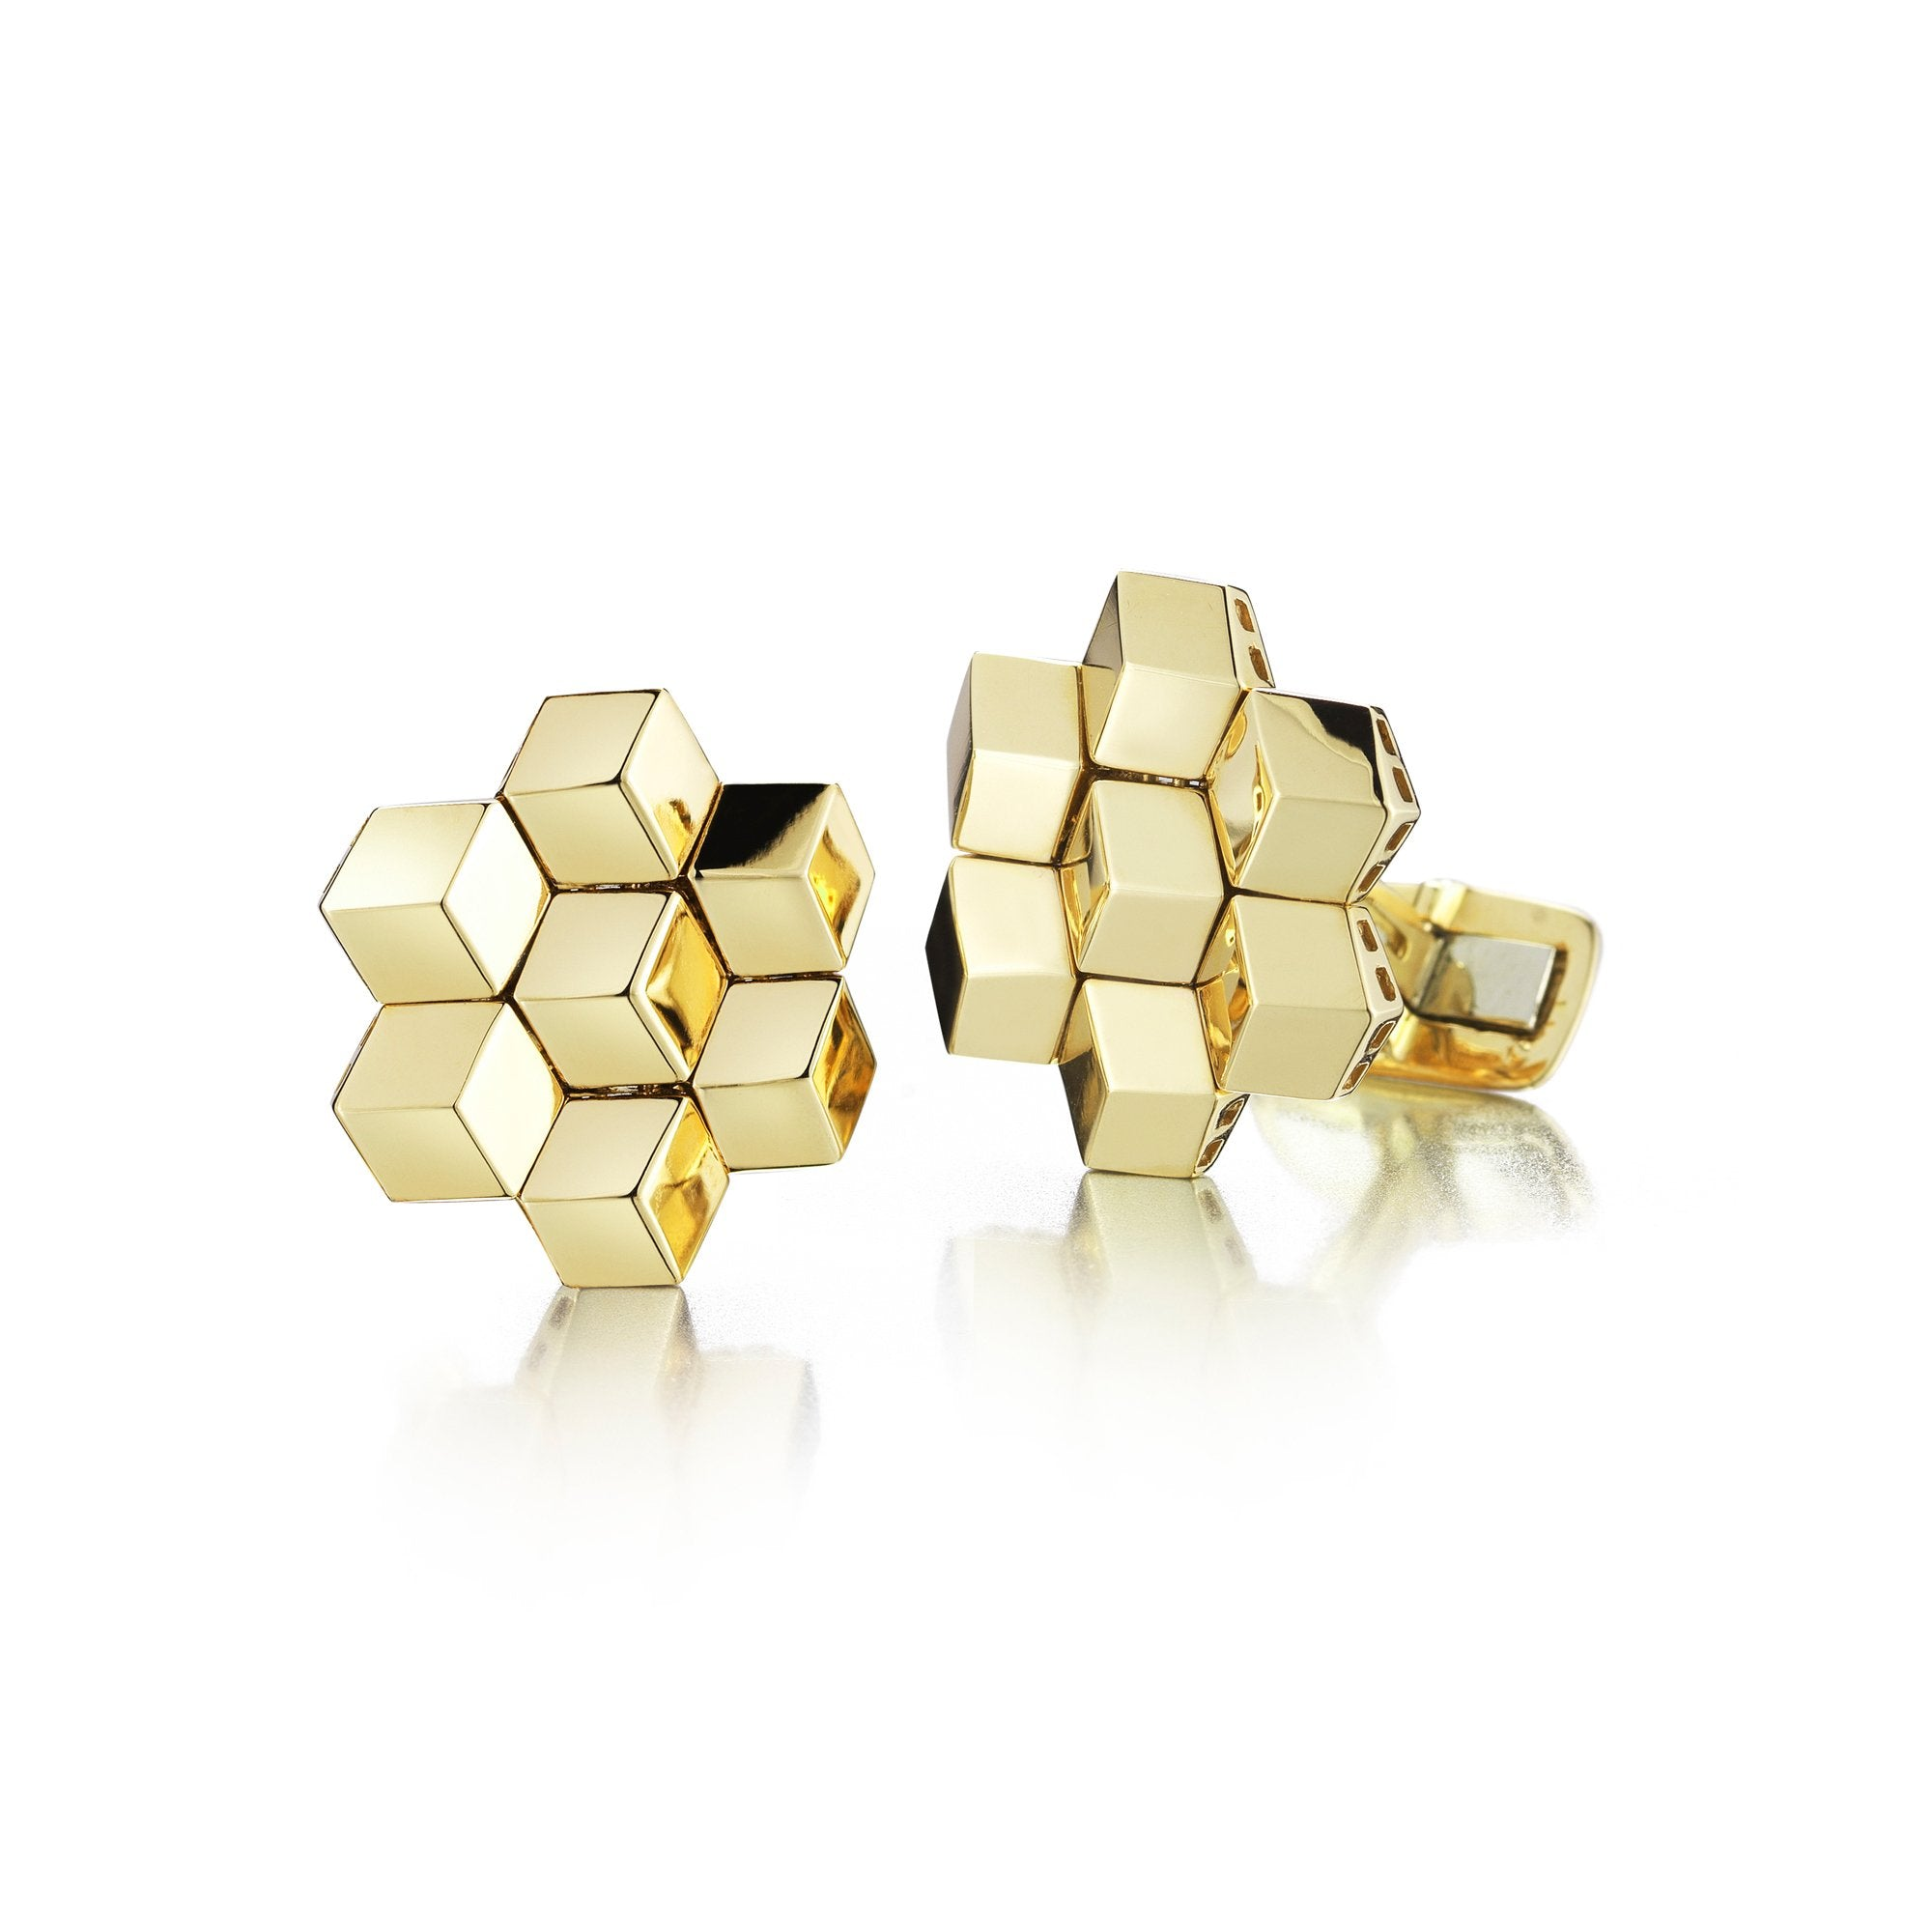 18kt Yellow Gold Cufflink Set - Paolo Costagli